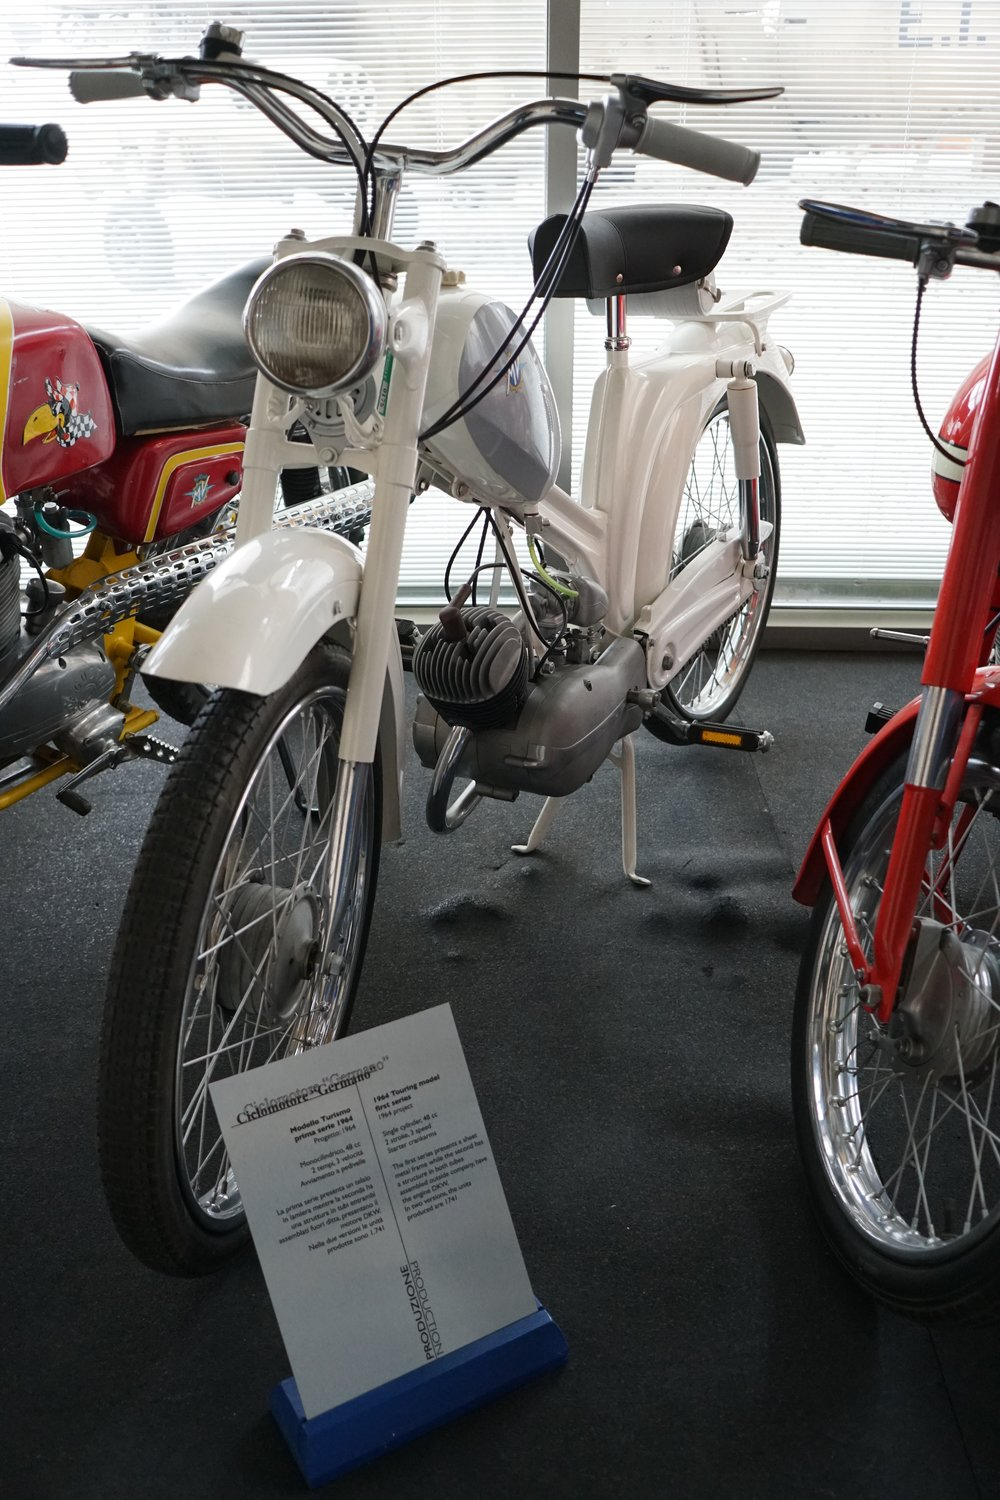 '64 Germano – 48cc, 2-stroke, three speeds. MV Agusta sold a total of more than 1,700 of these mopeds. The 'Germano' was made in two versions, one seen here with a pressed-steel frame and another with a tube frame. MV brought the motors in from DKW.